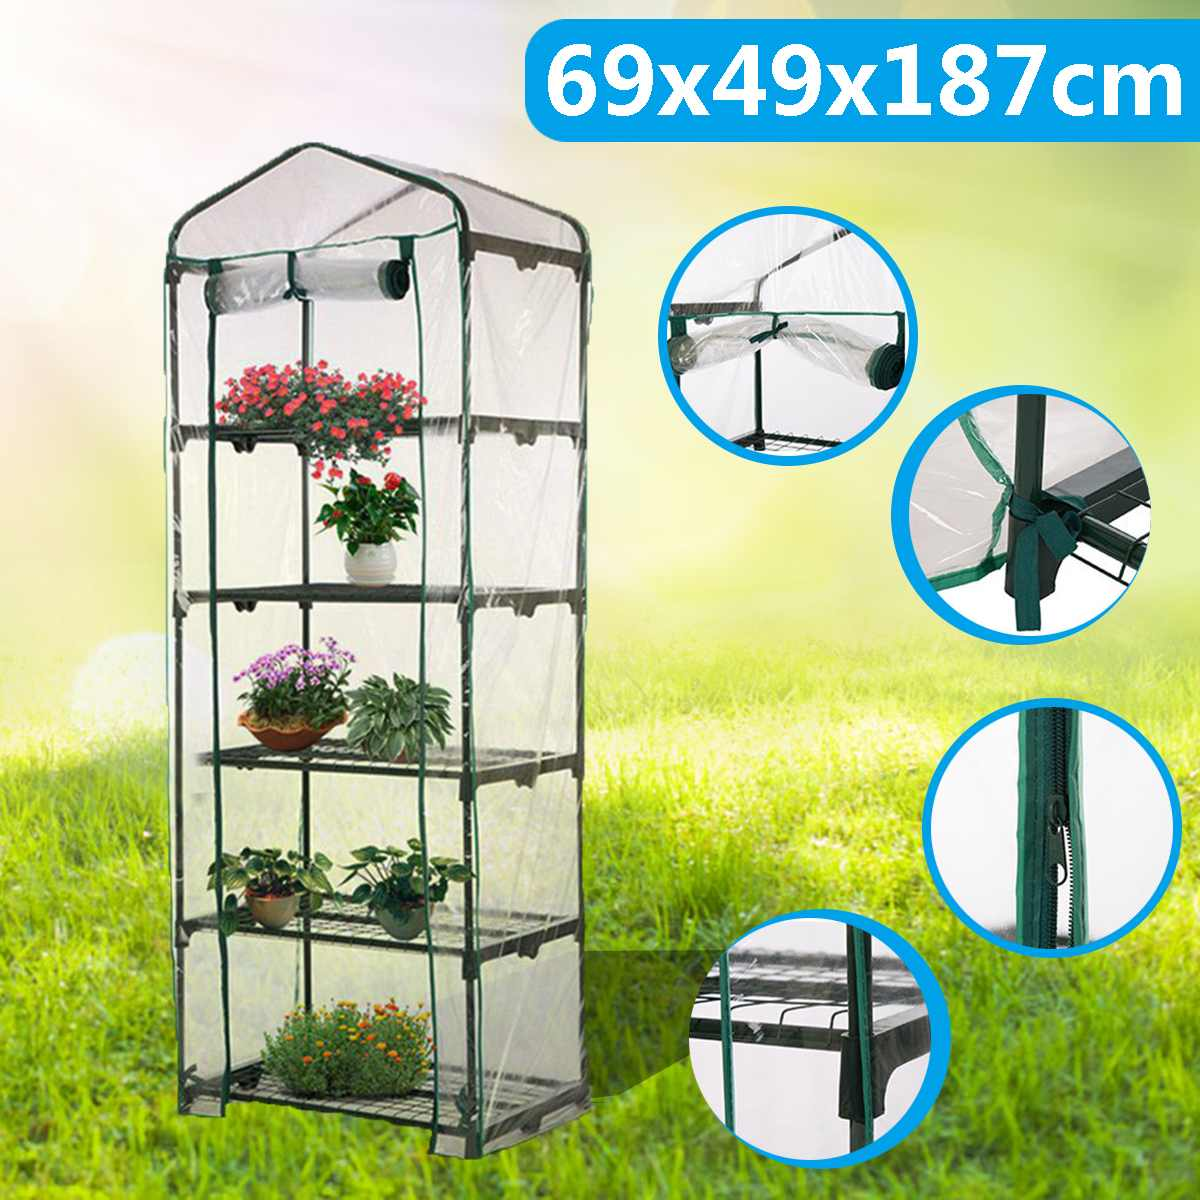 Methodical Garden Greenhouse Hot Plant House Shelf Apex-roof 5-tier Shed Clear Pvc Cover Keep Warm Good Breathability 69x49x187cm Removable High Quality And Inexpensive Garden Greenhouses